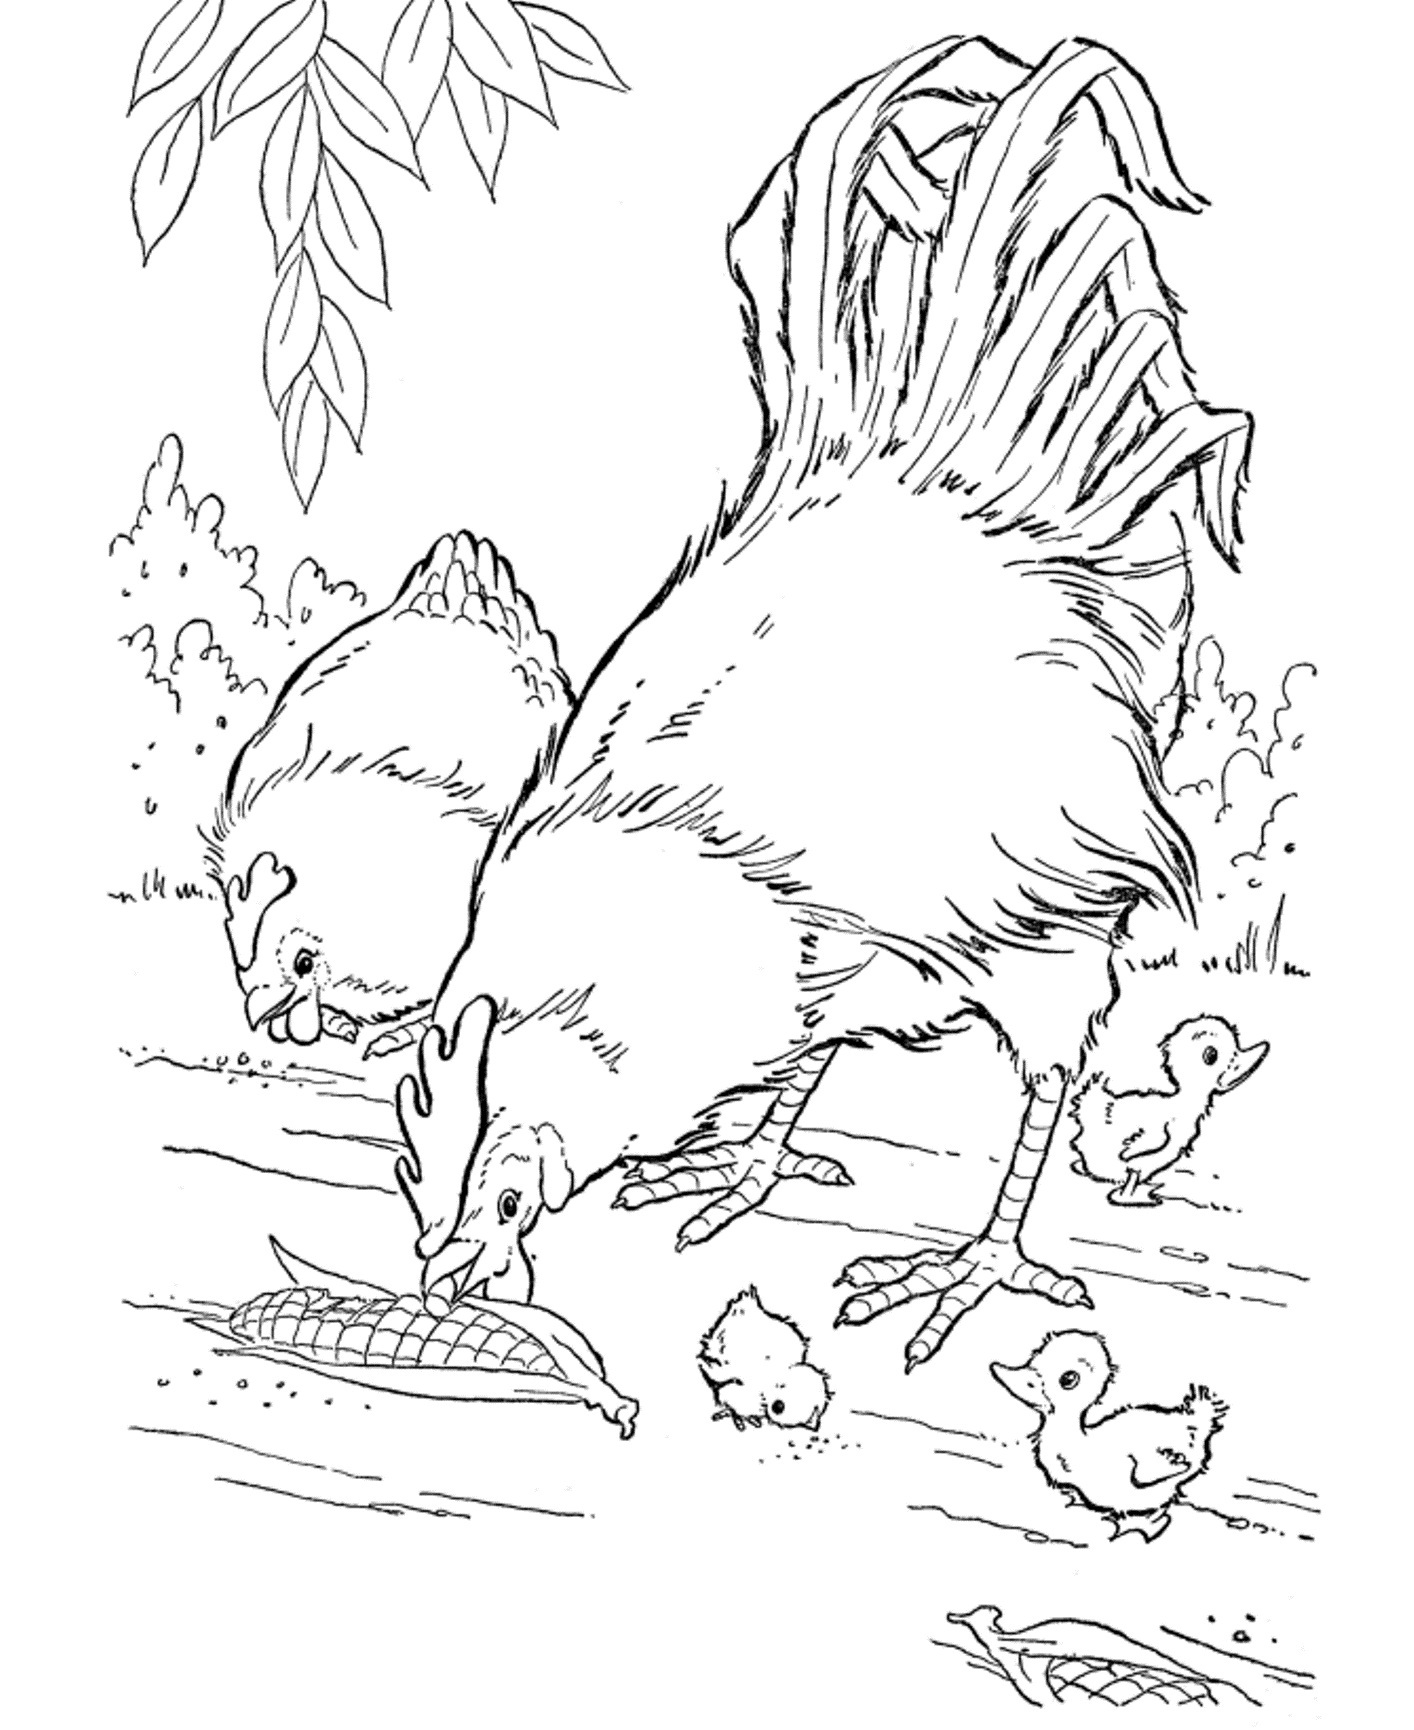 Printable Farm Animals Coloring Pages at GetDrawings.com | Free for ...